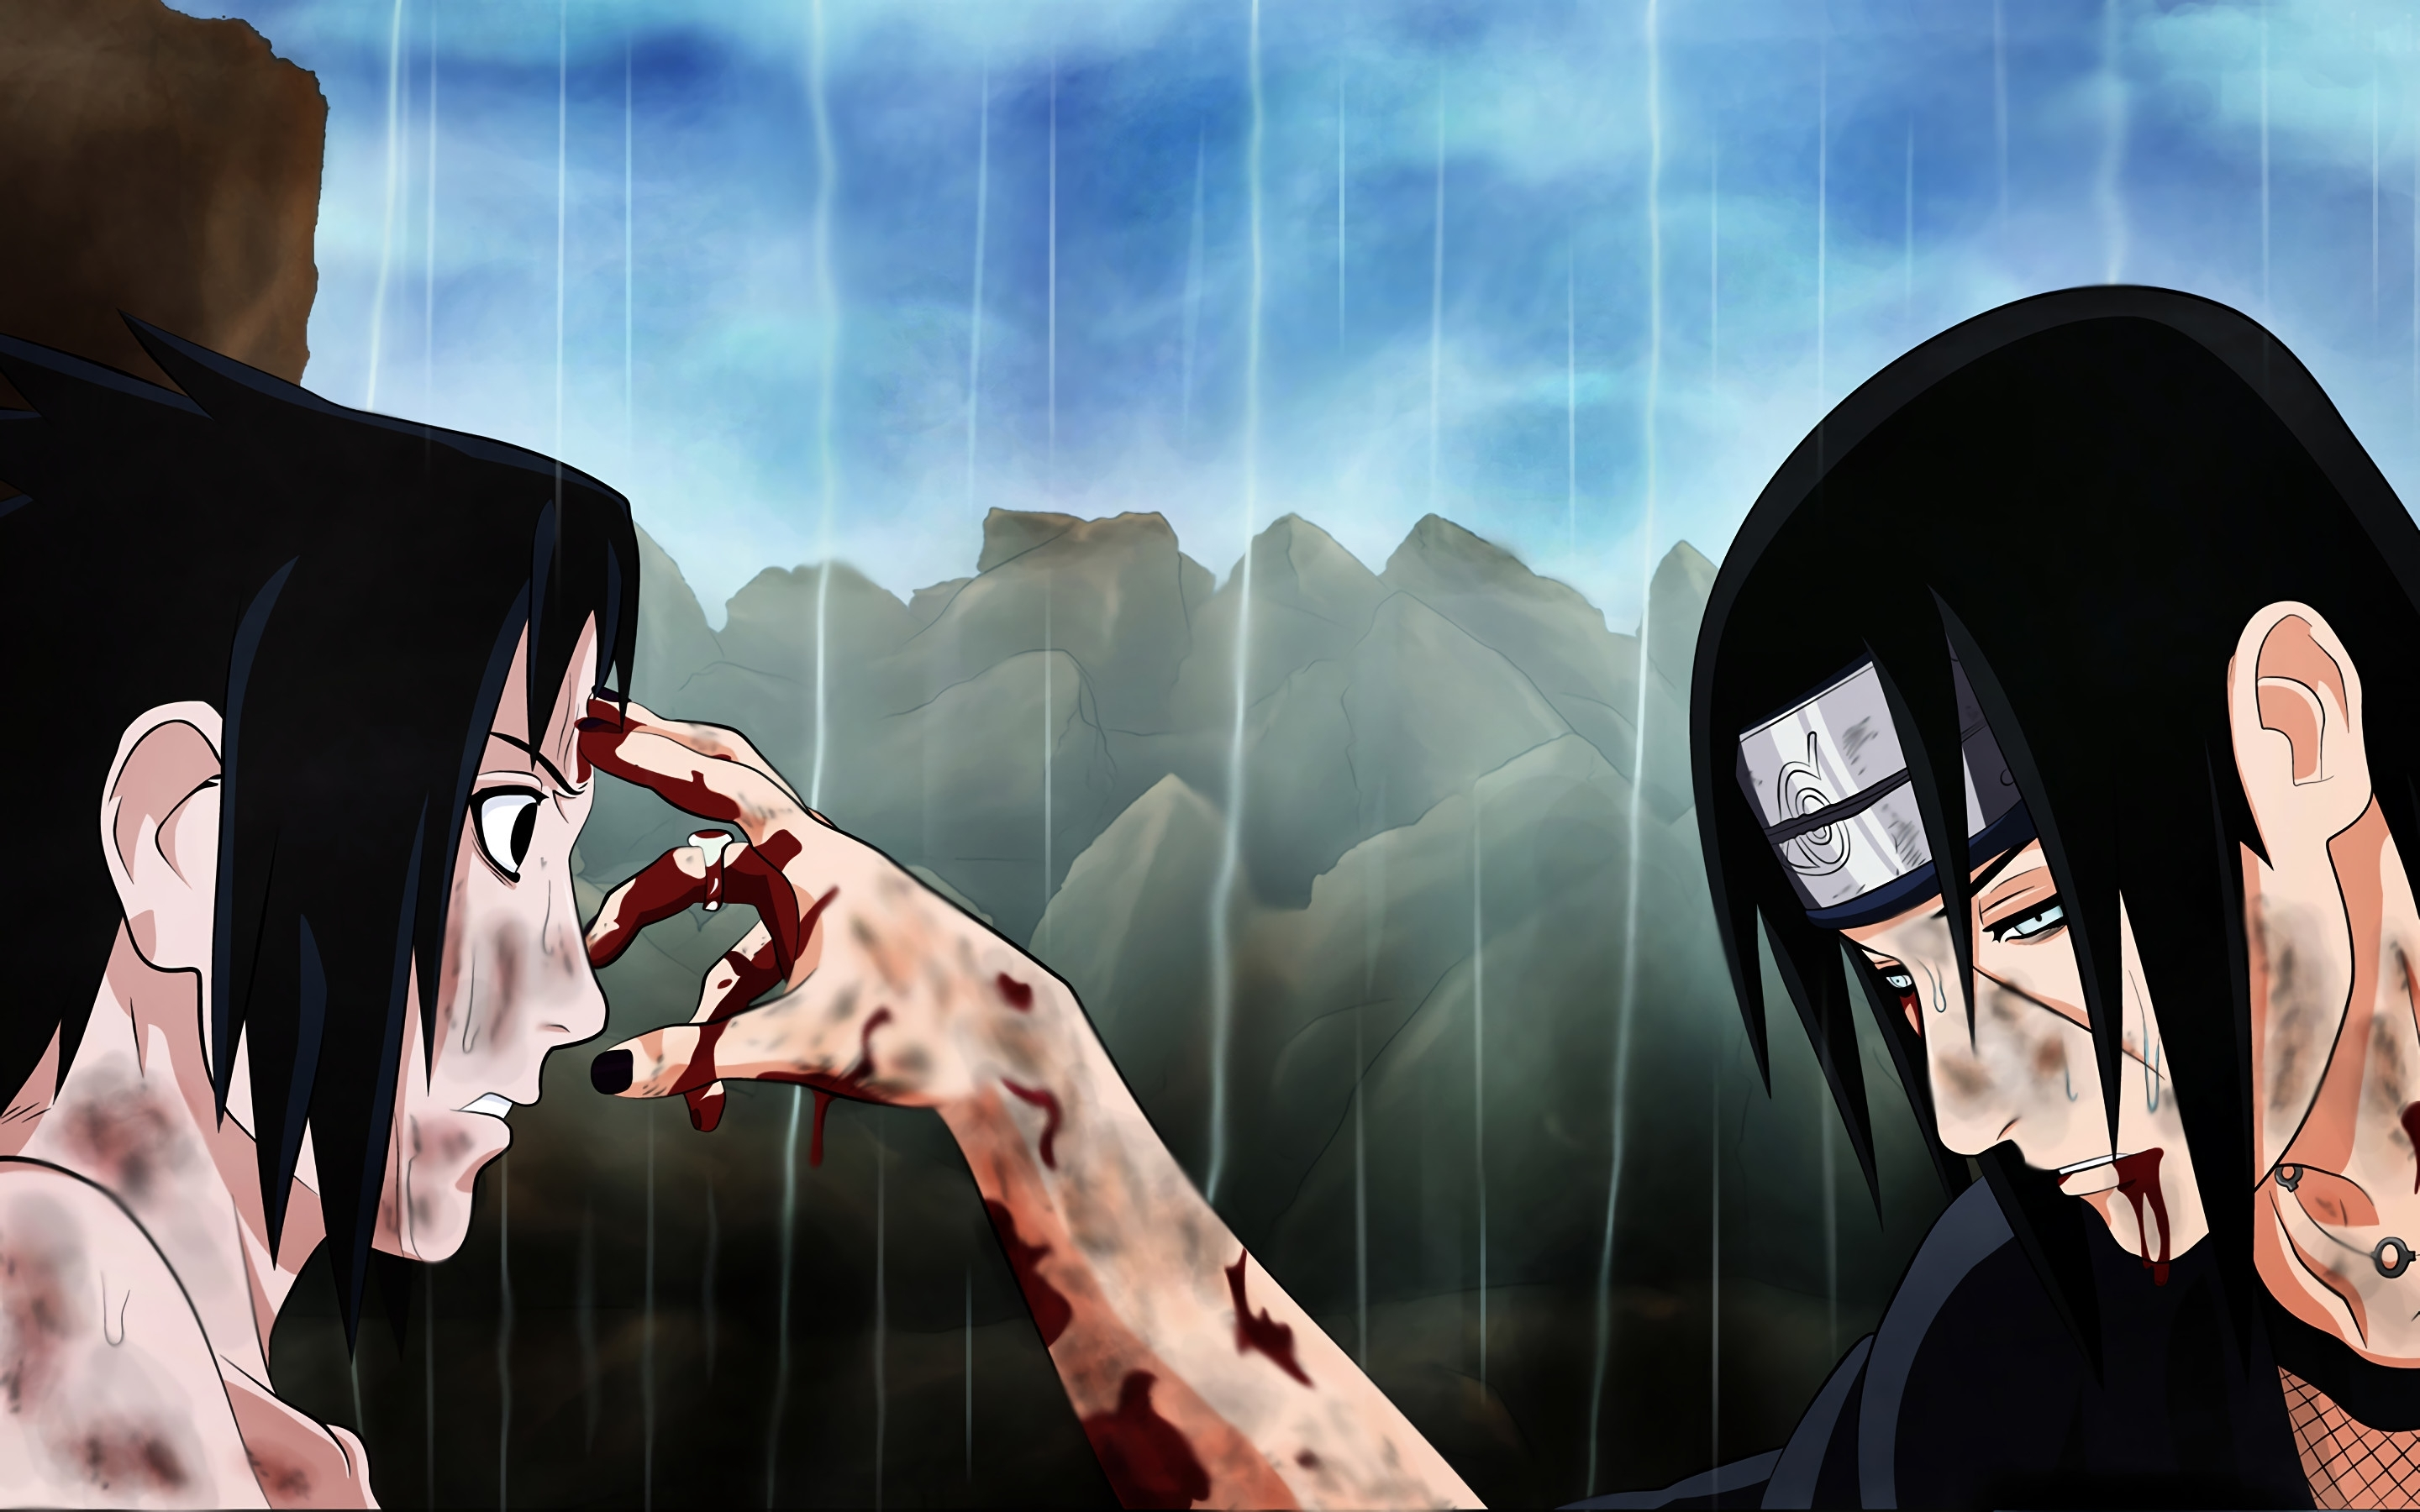 sasuke and itachi wallpaper hd (62+ images)